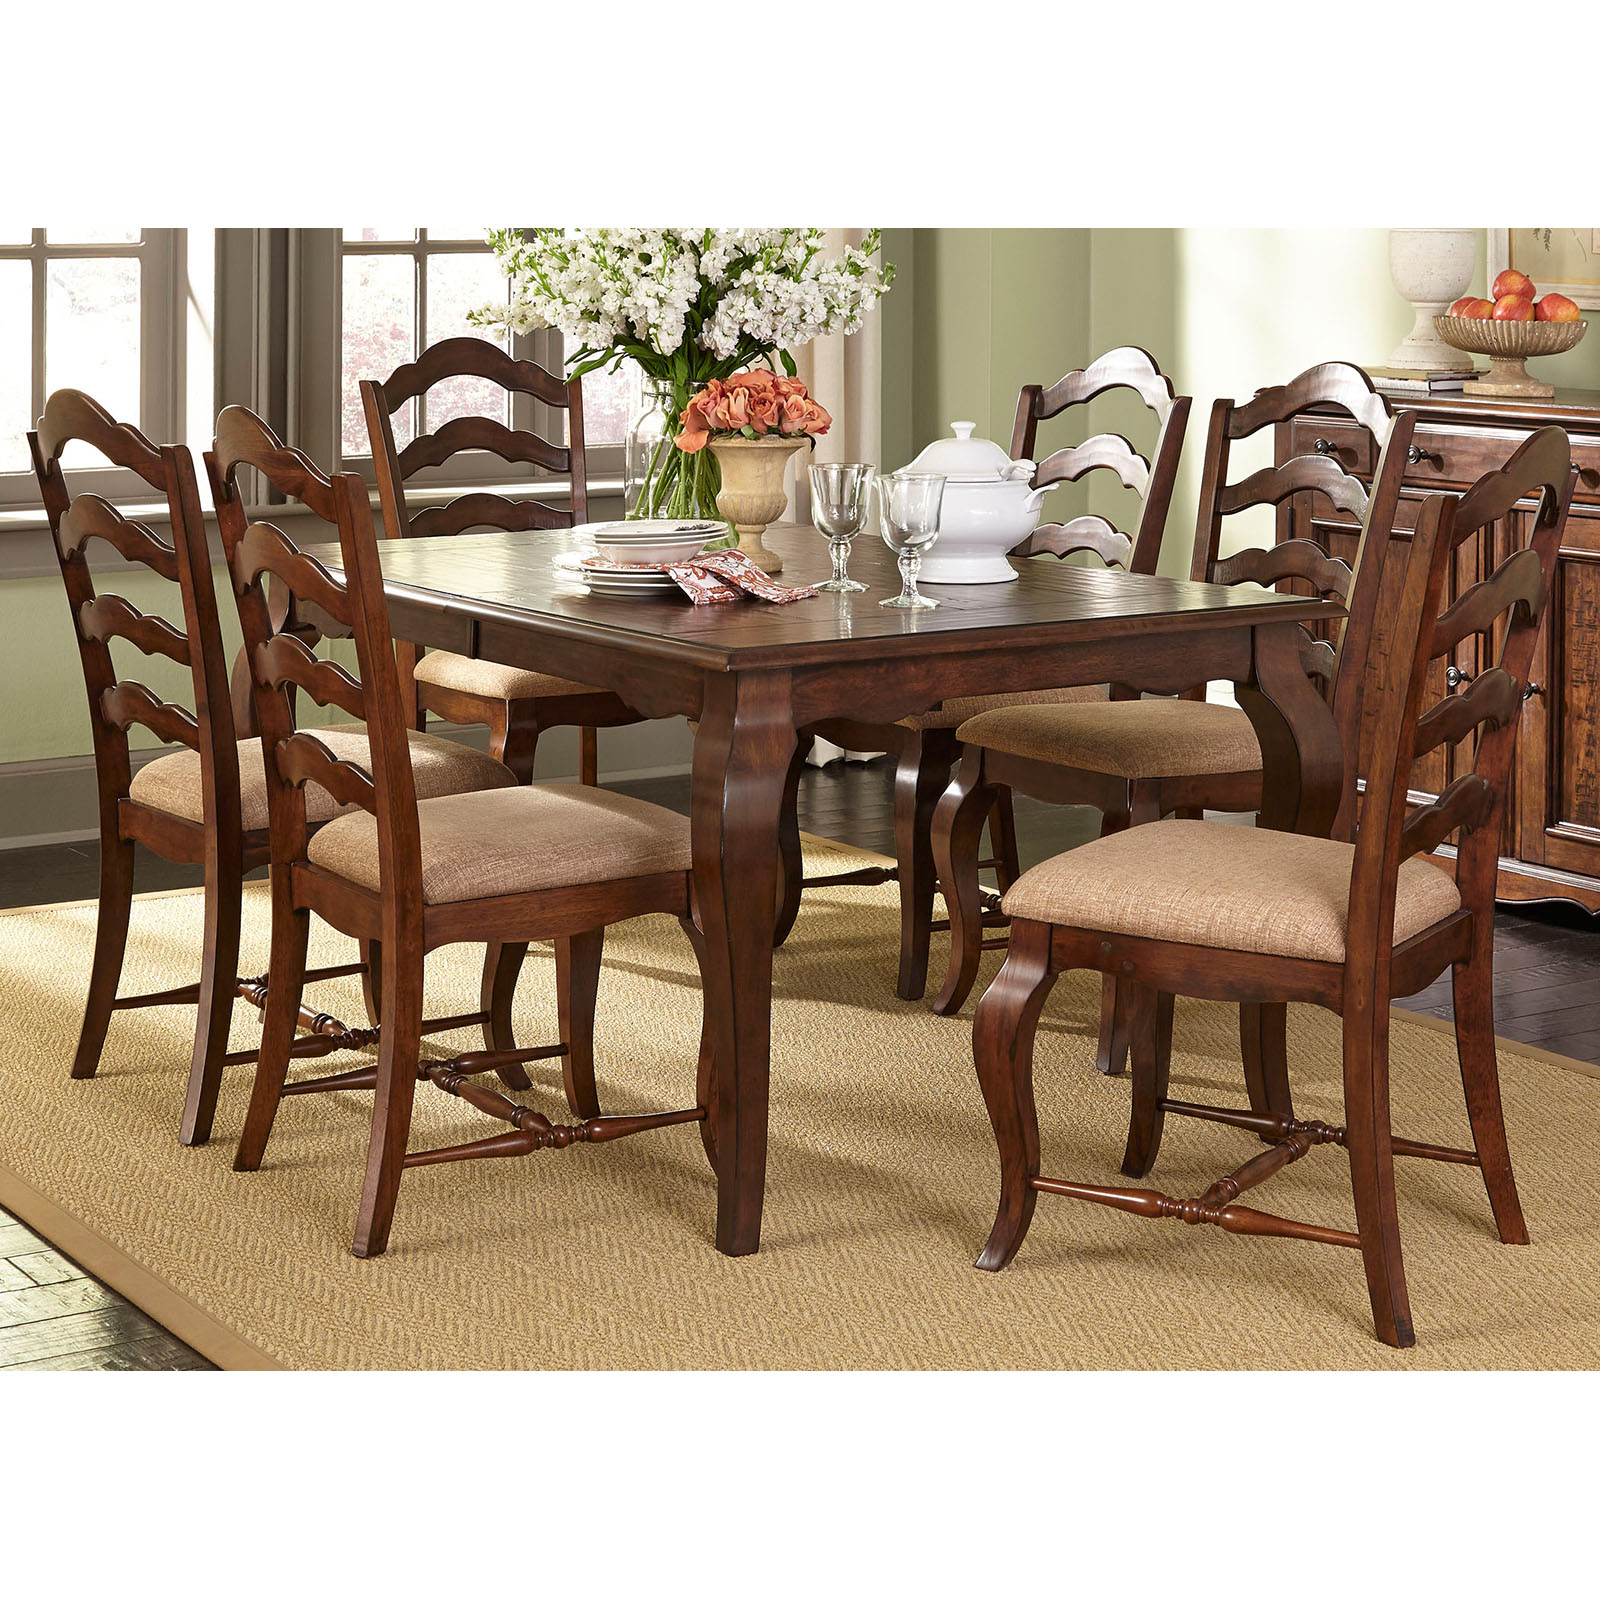 Liberty Furniture Savanna 7-piece Rectangular Dining Table ...